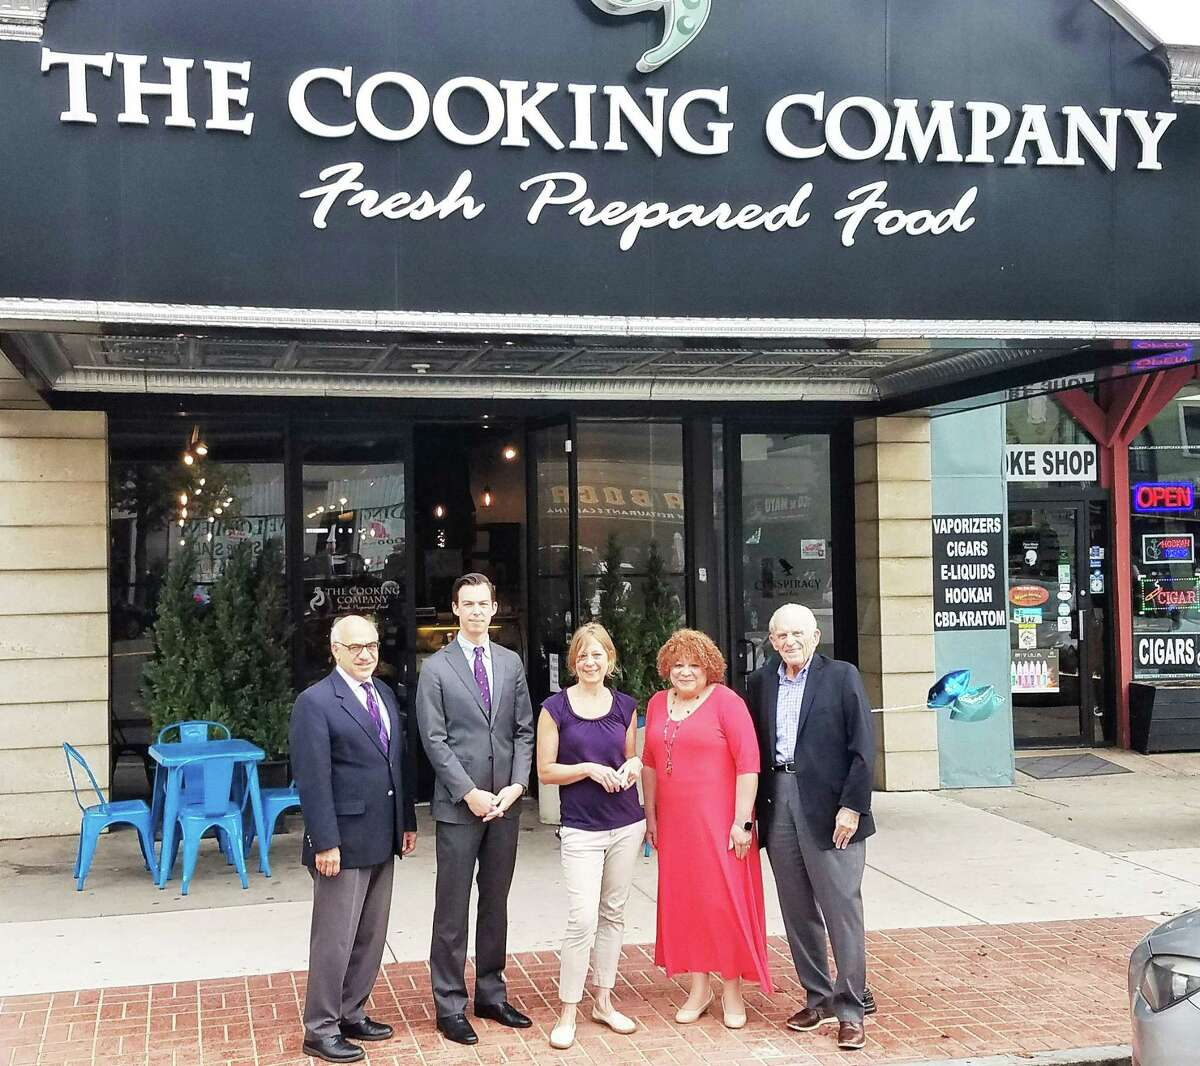 The Cooking Co. in Middletown celebrated its reopening Oct. 5. From left are Economic Development Specialist Thomas Marano, Mayor Ben Florsheim, owner Sue Bauer, Central Business Bureau Chairwoman Pamela Steele, and Middlesex County Chamber of Commerce President Larry McHugh.